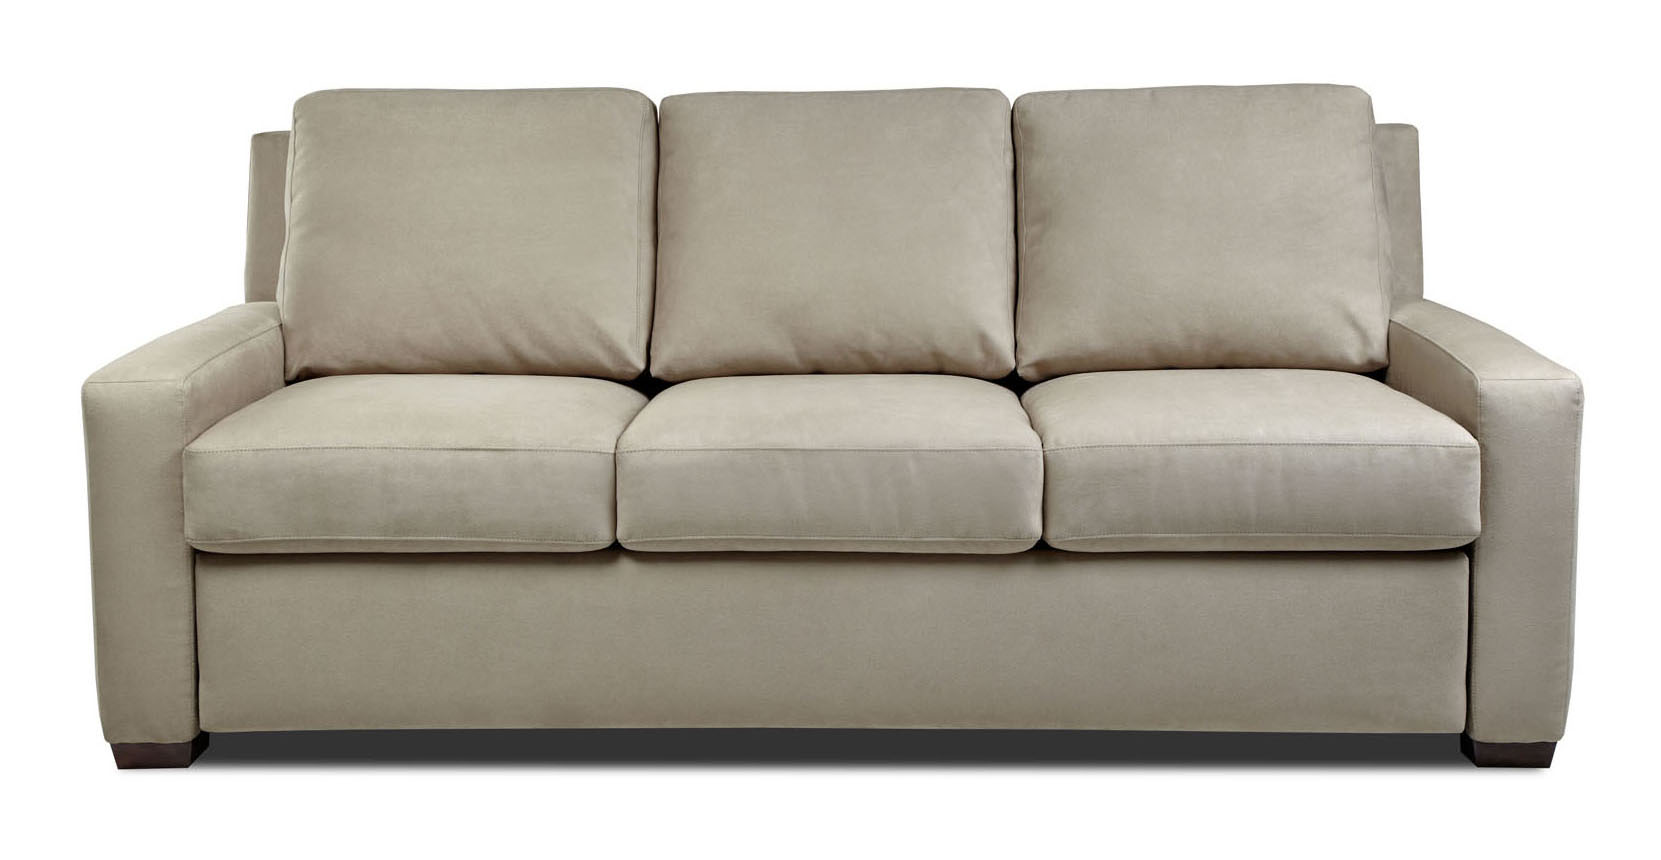 sleeper sofa american leather photo - 10